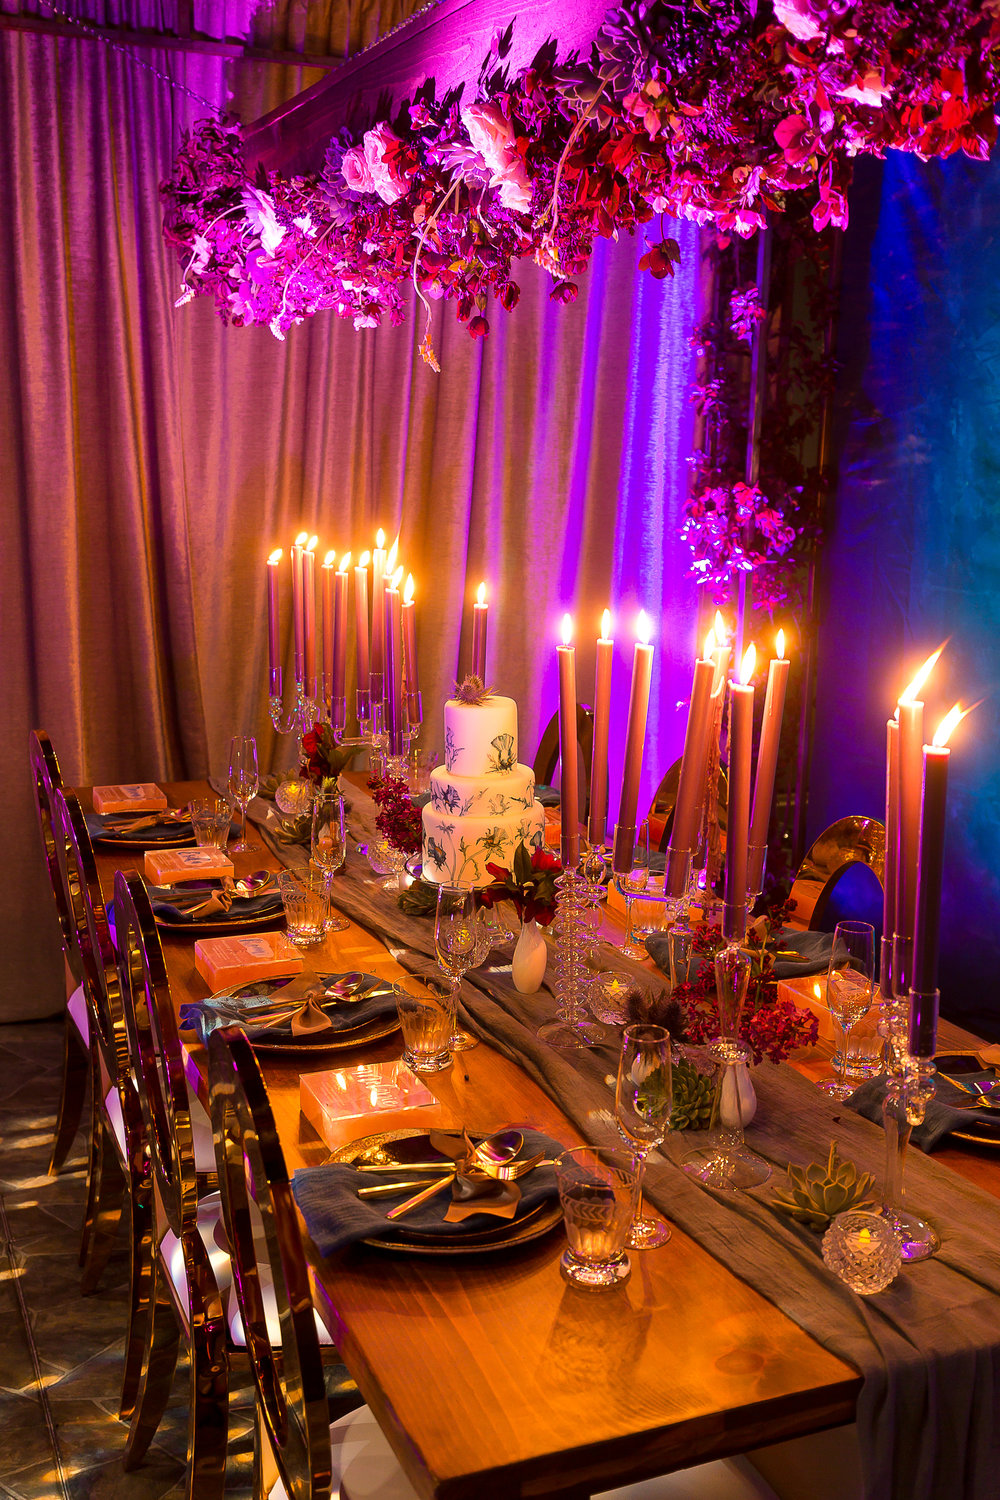 009-Chantal-Events-Space&Details.jpg